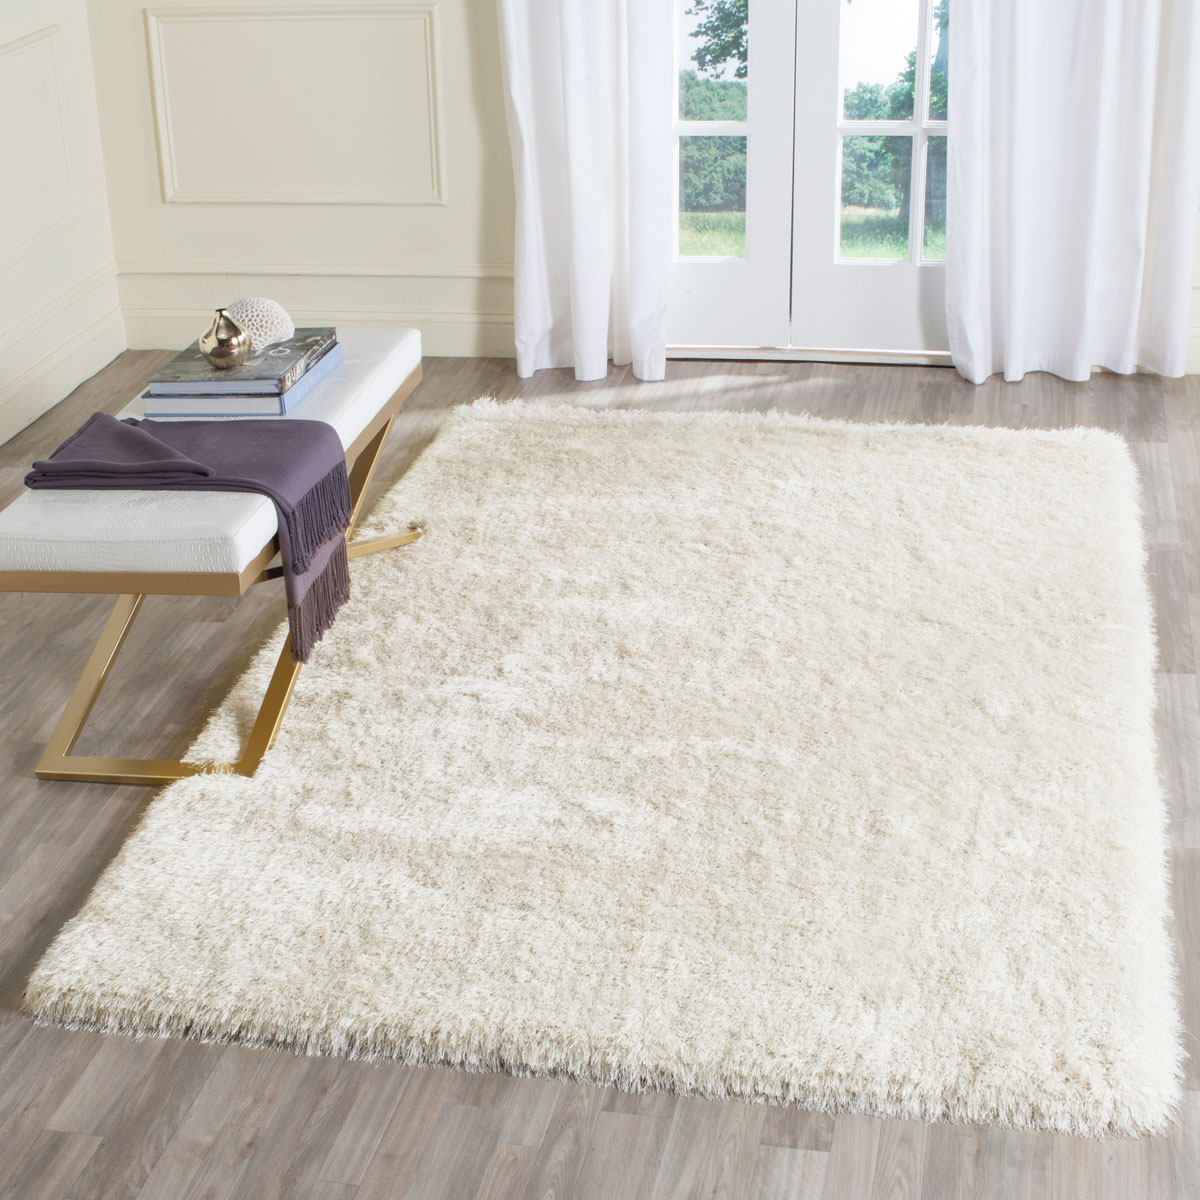 rugs of area fluffy for rug awesome scenic soft size bedroom ideas full plush shag